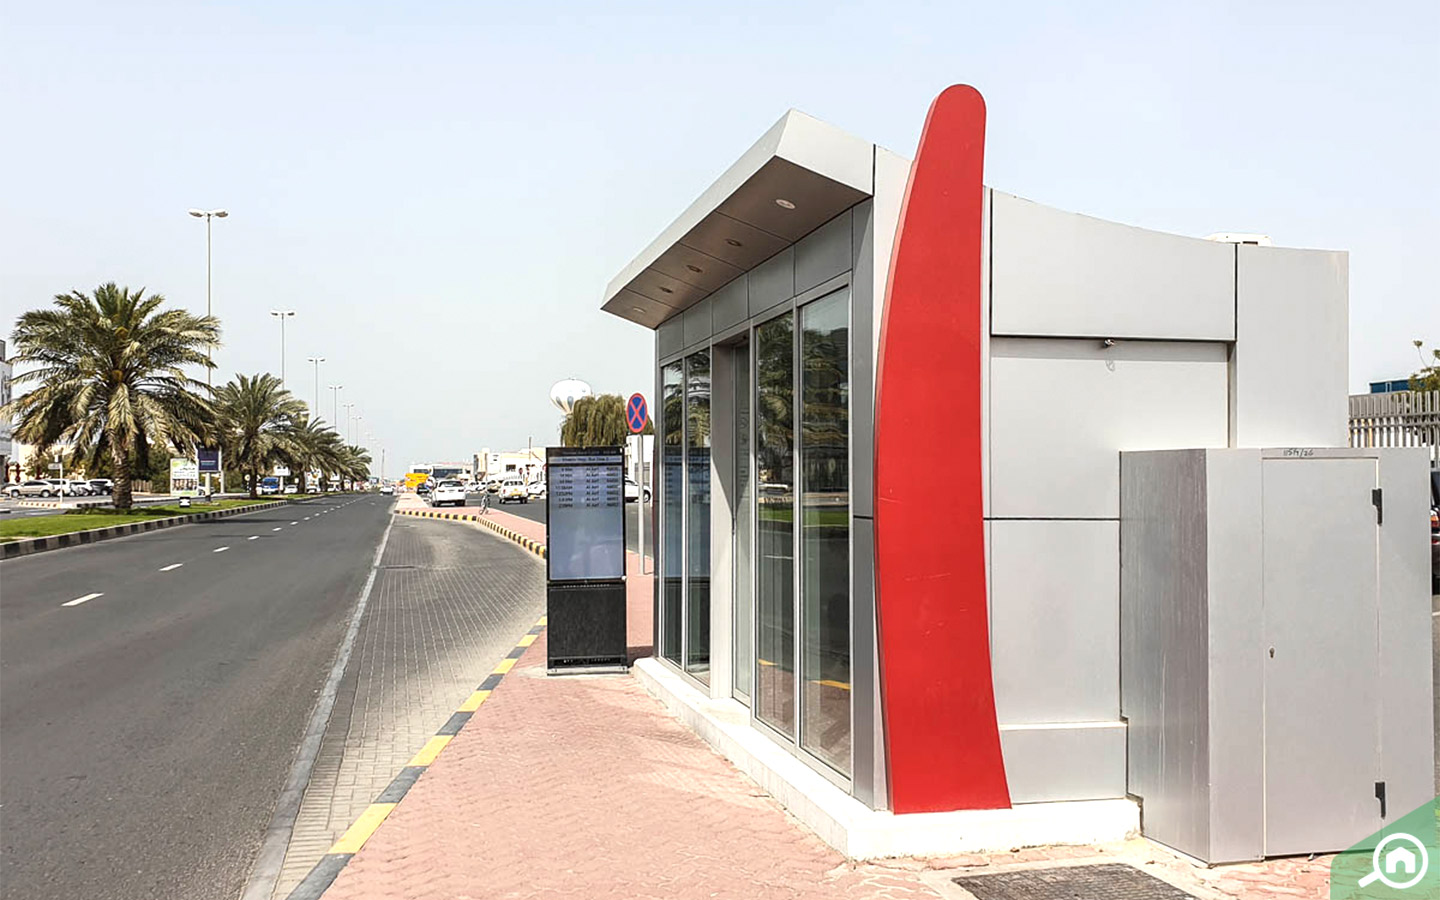 Bus stop near ajman downtown